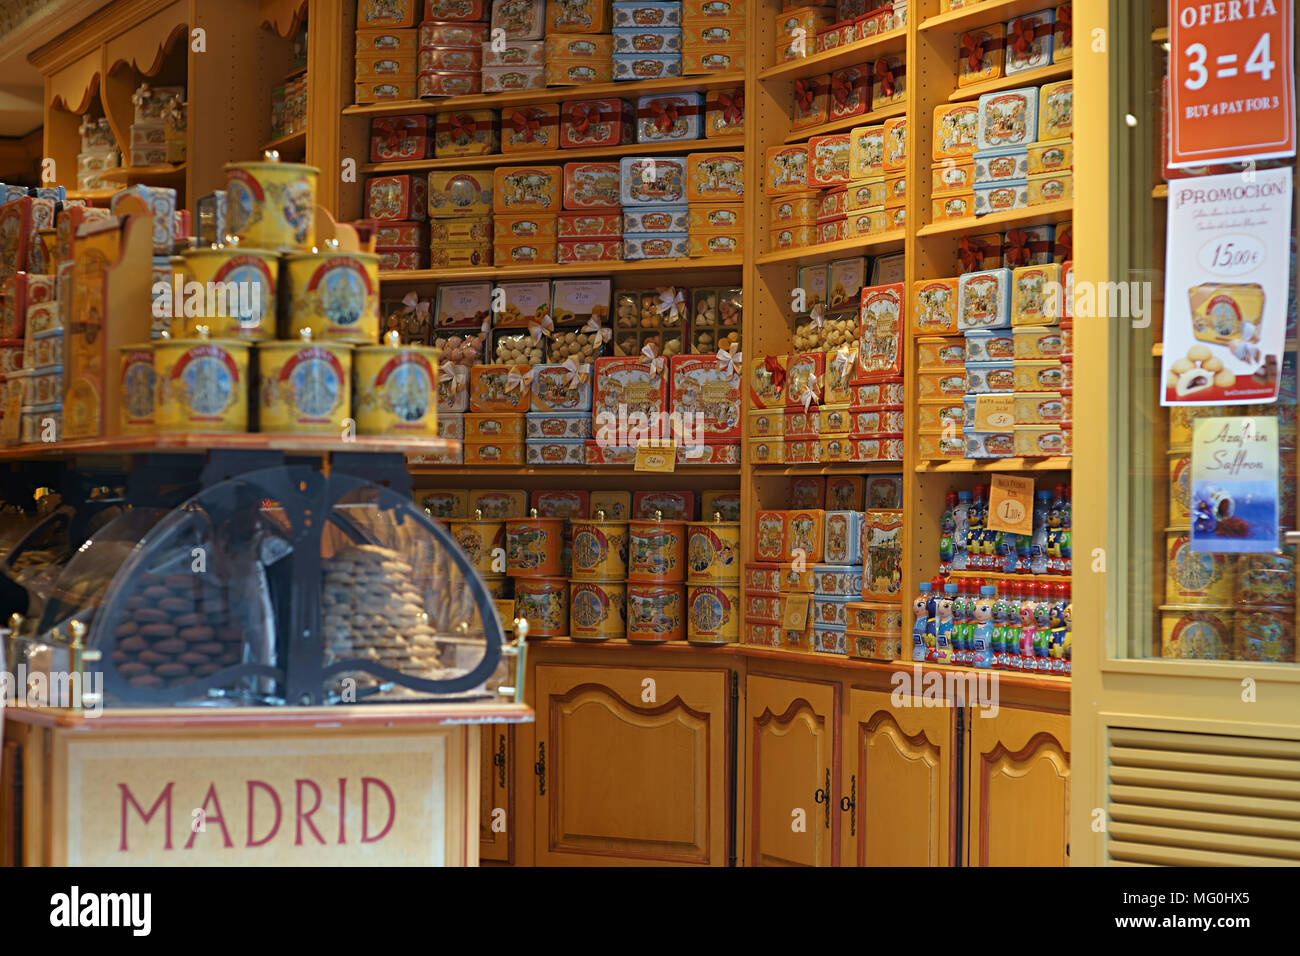 La cure gourmande biscuits store in Madrid, Spain - Stock Image